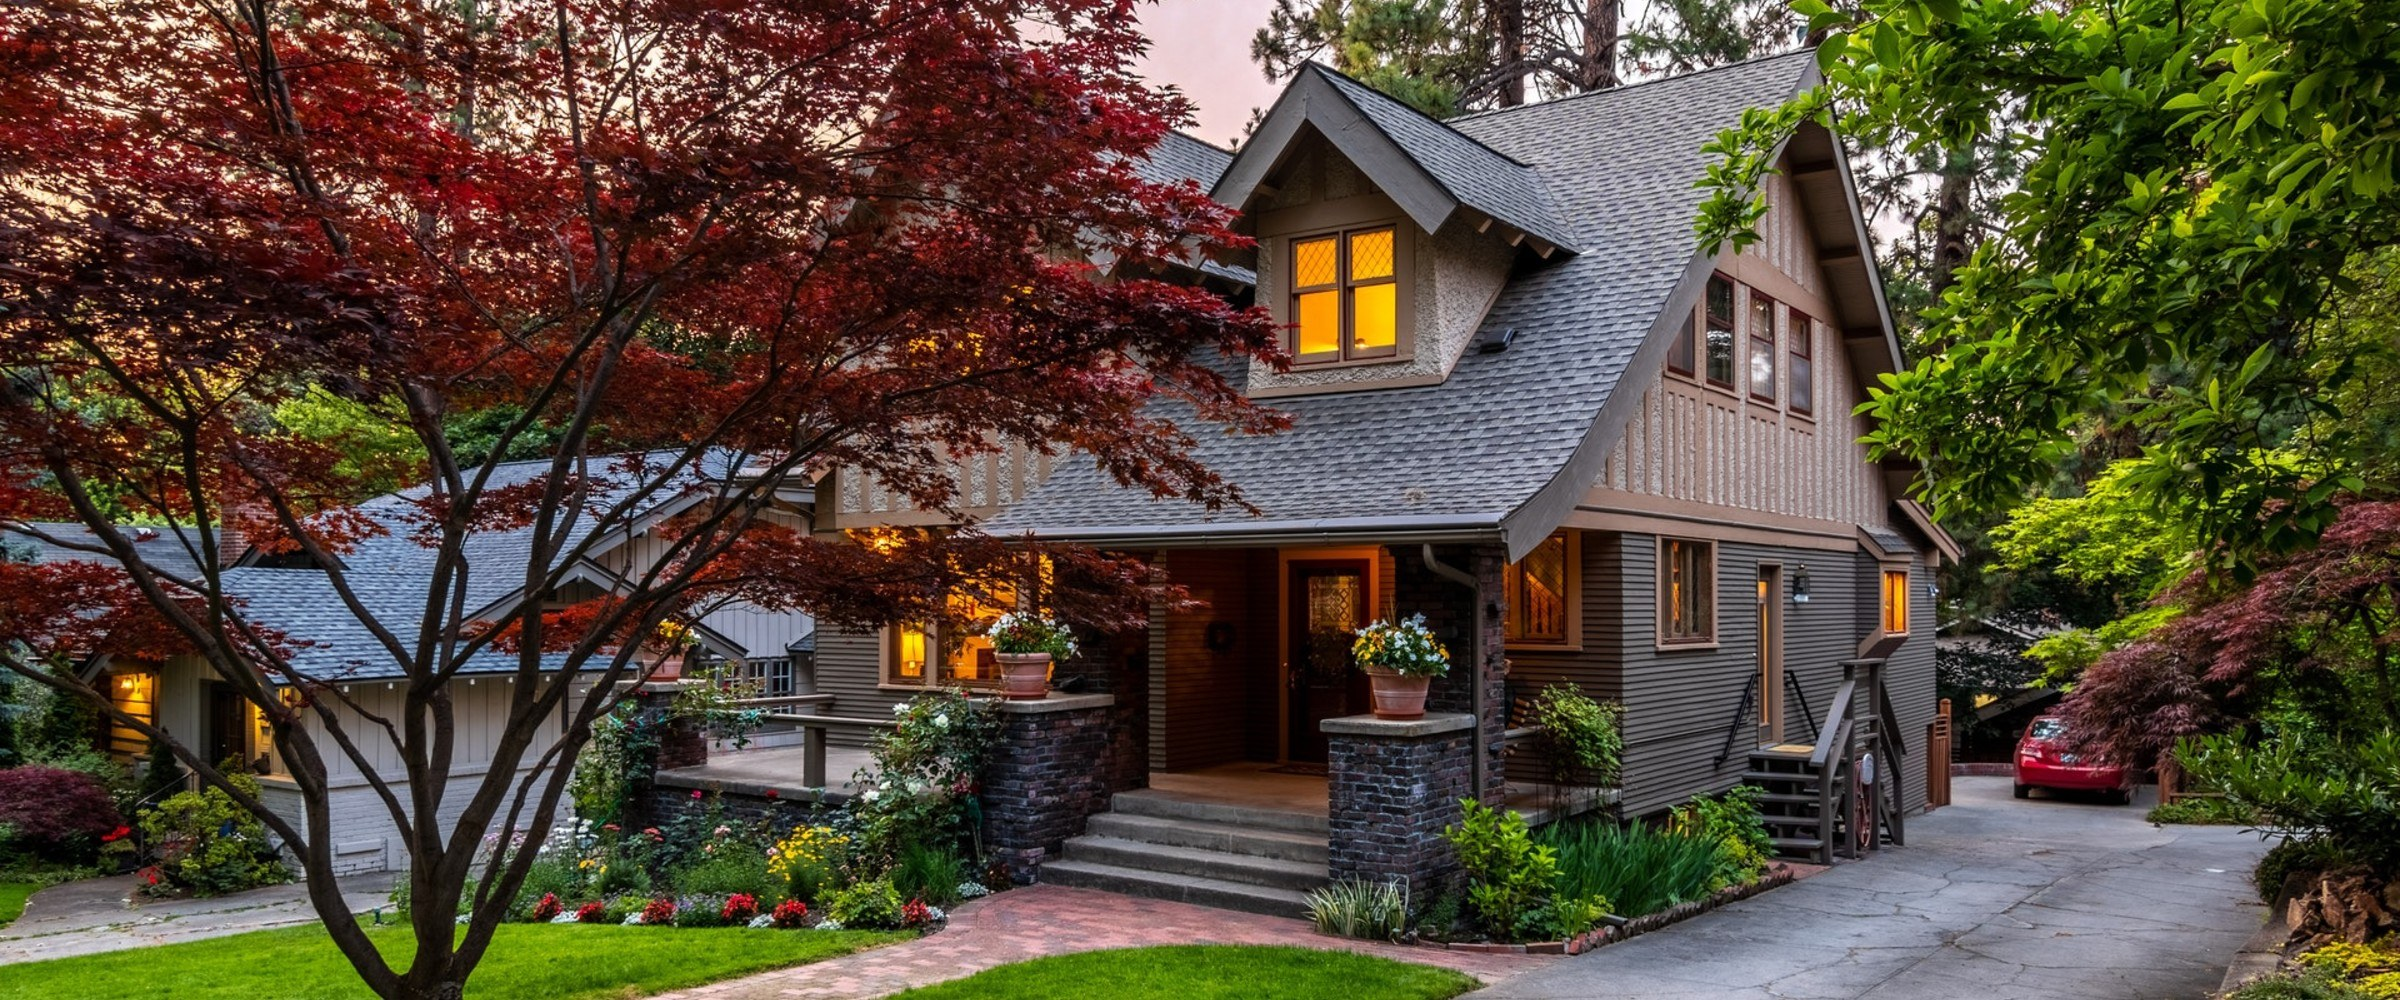 Zillow home